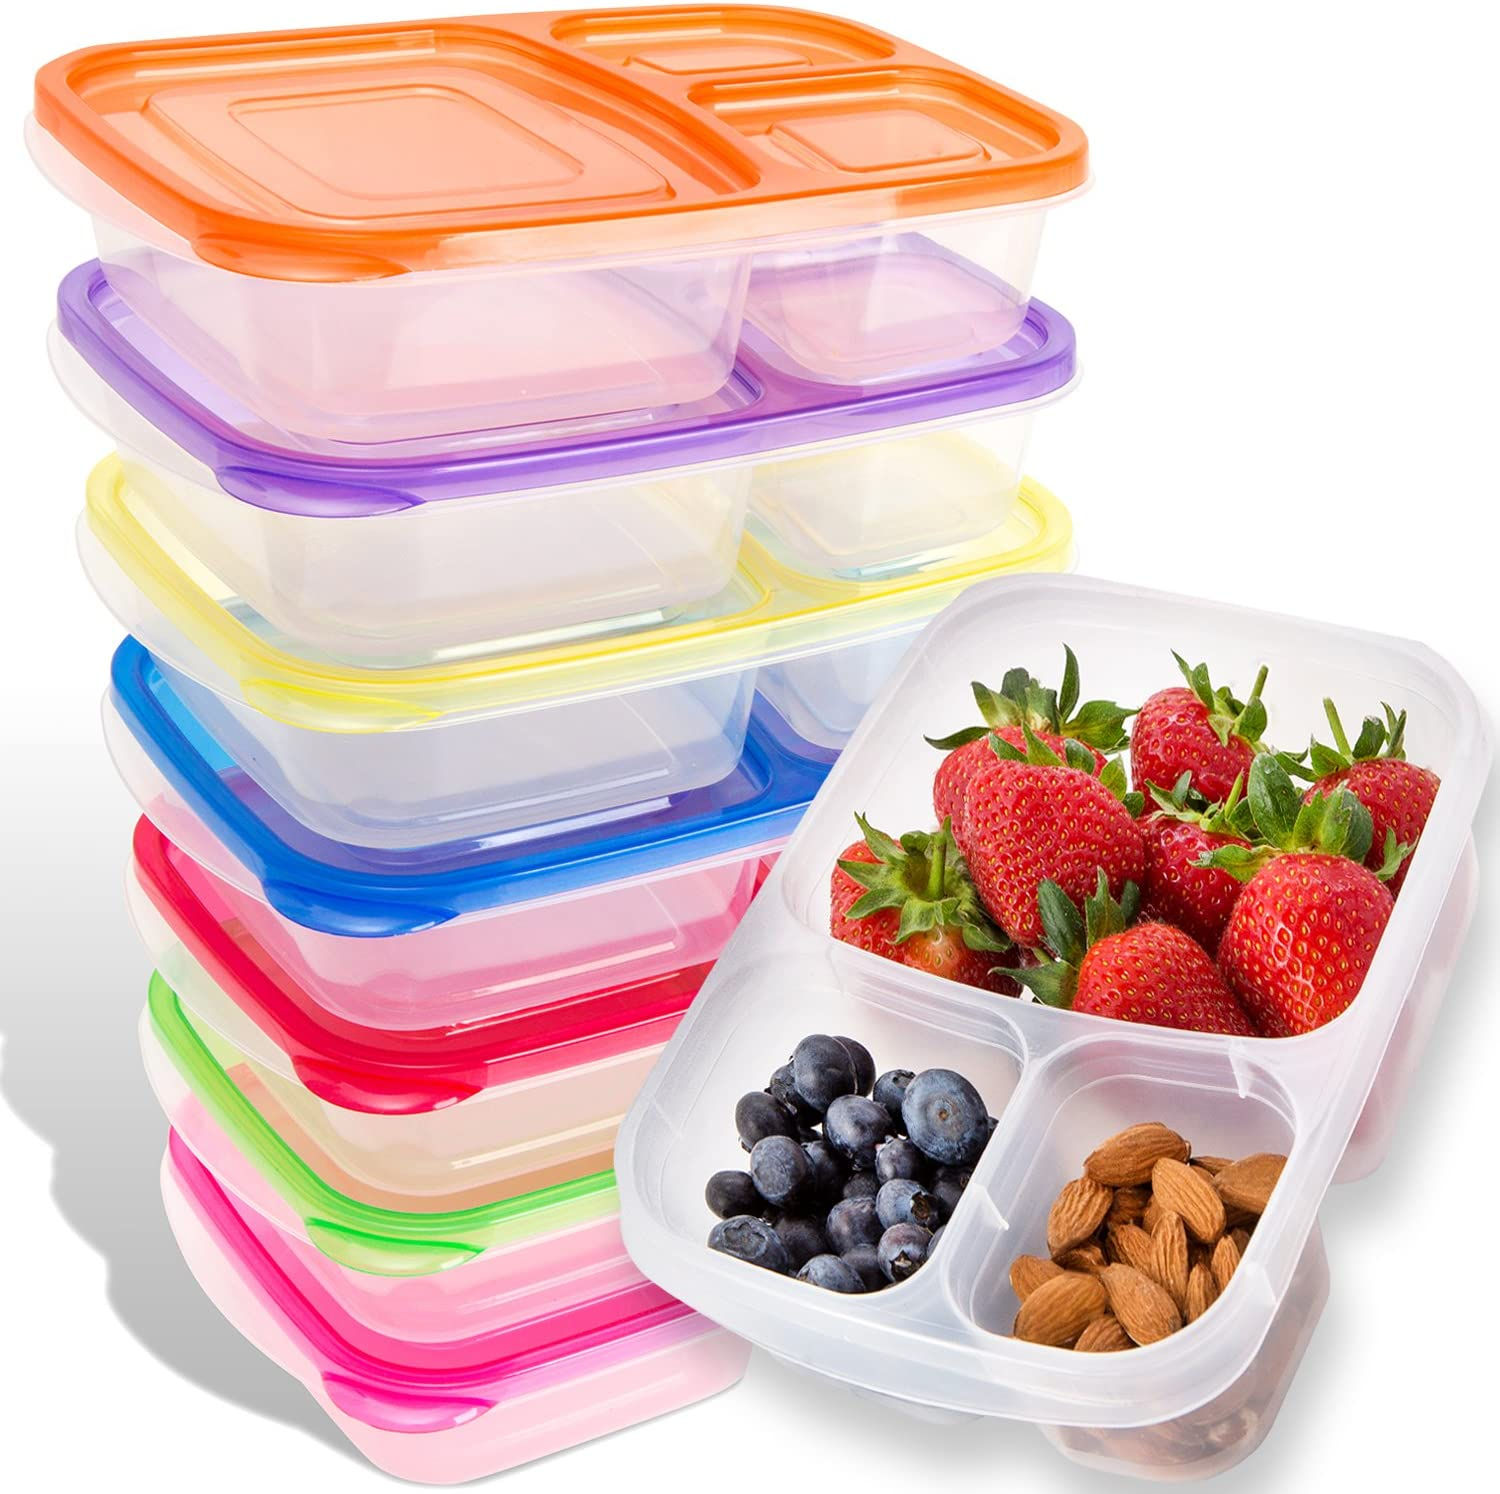 Amazon Com Bento Lunch Box Meal Prep Containers 7 Pack Leak Proof Reusable 3 Compartment Plastic Divided Food Storage Container Boxes For Kids Adults Microwave Dishwasher And Freezer